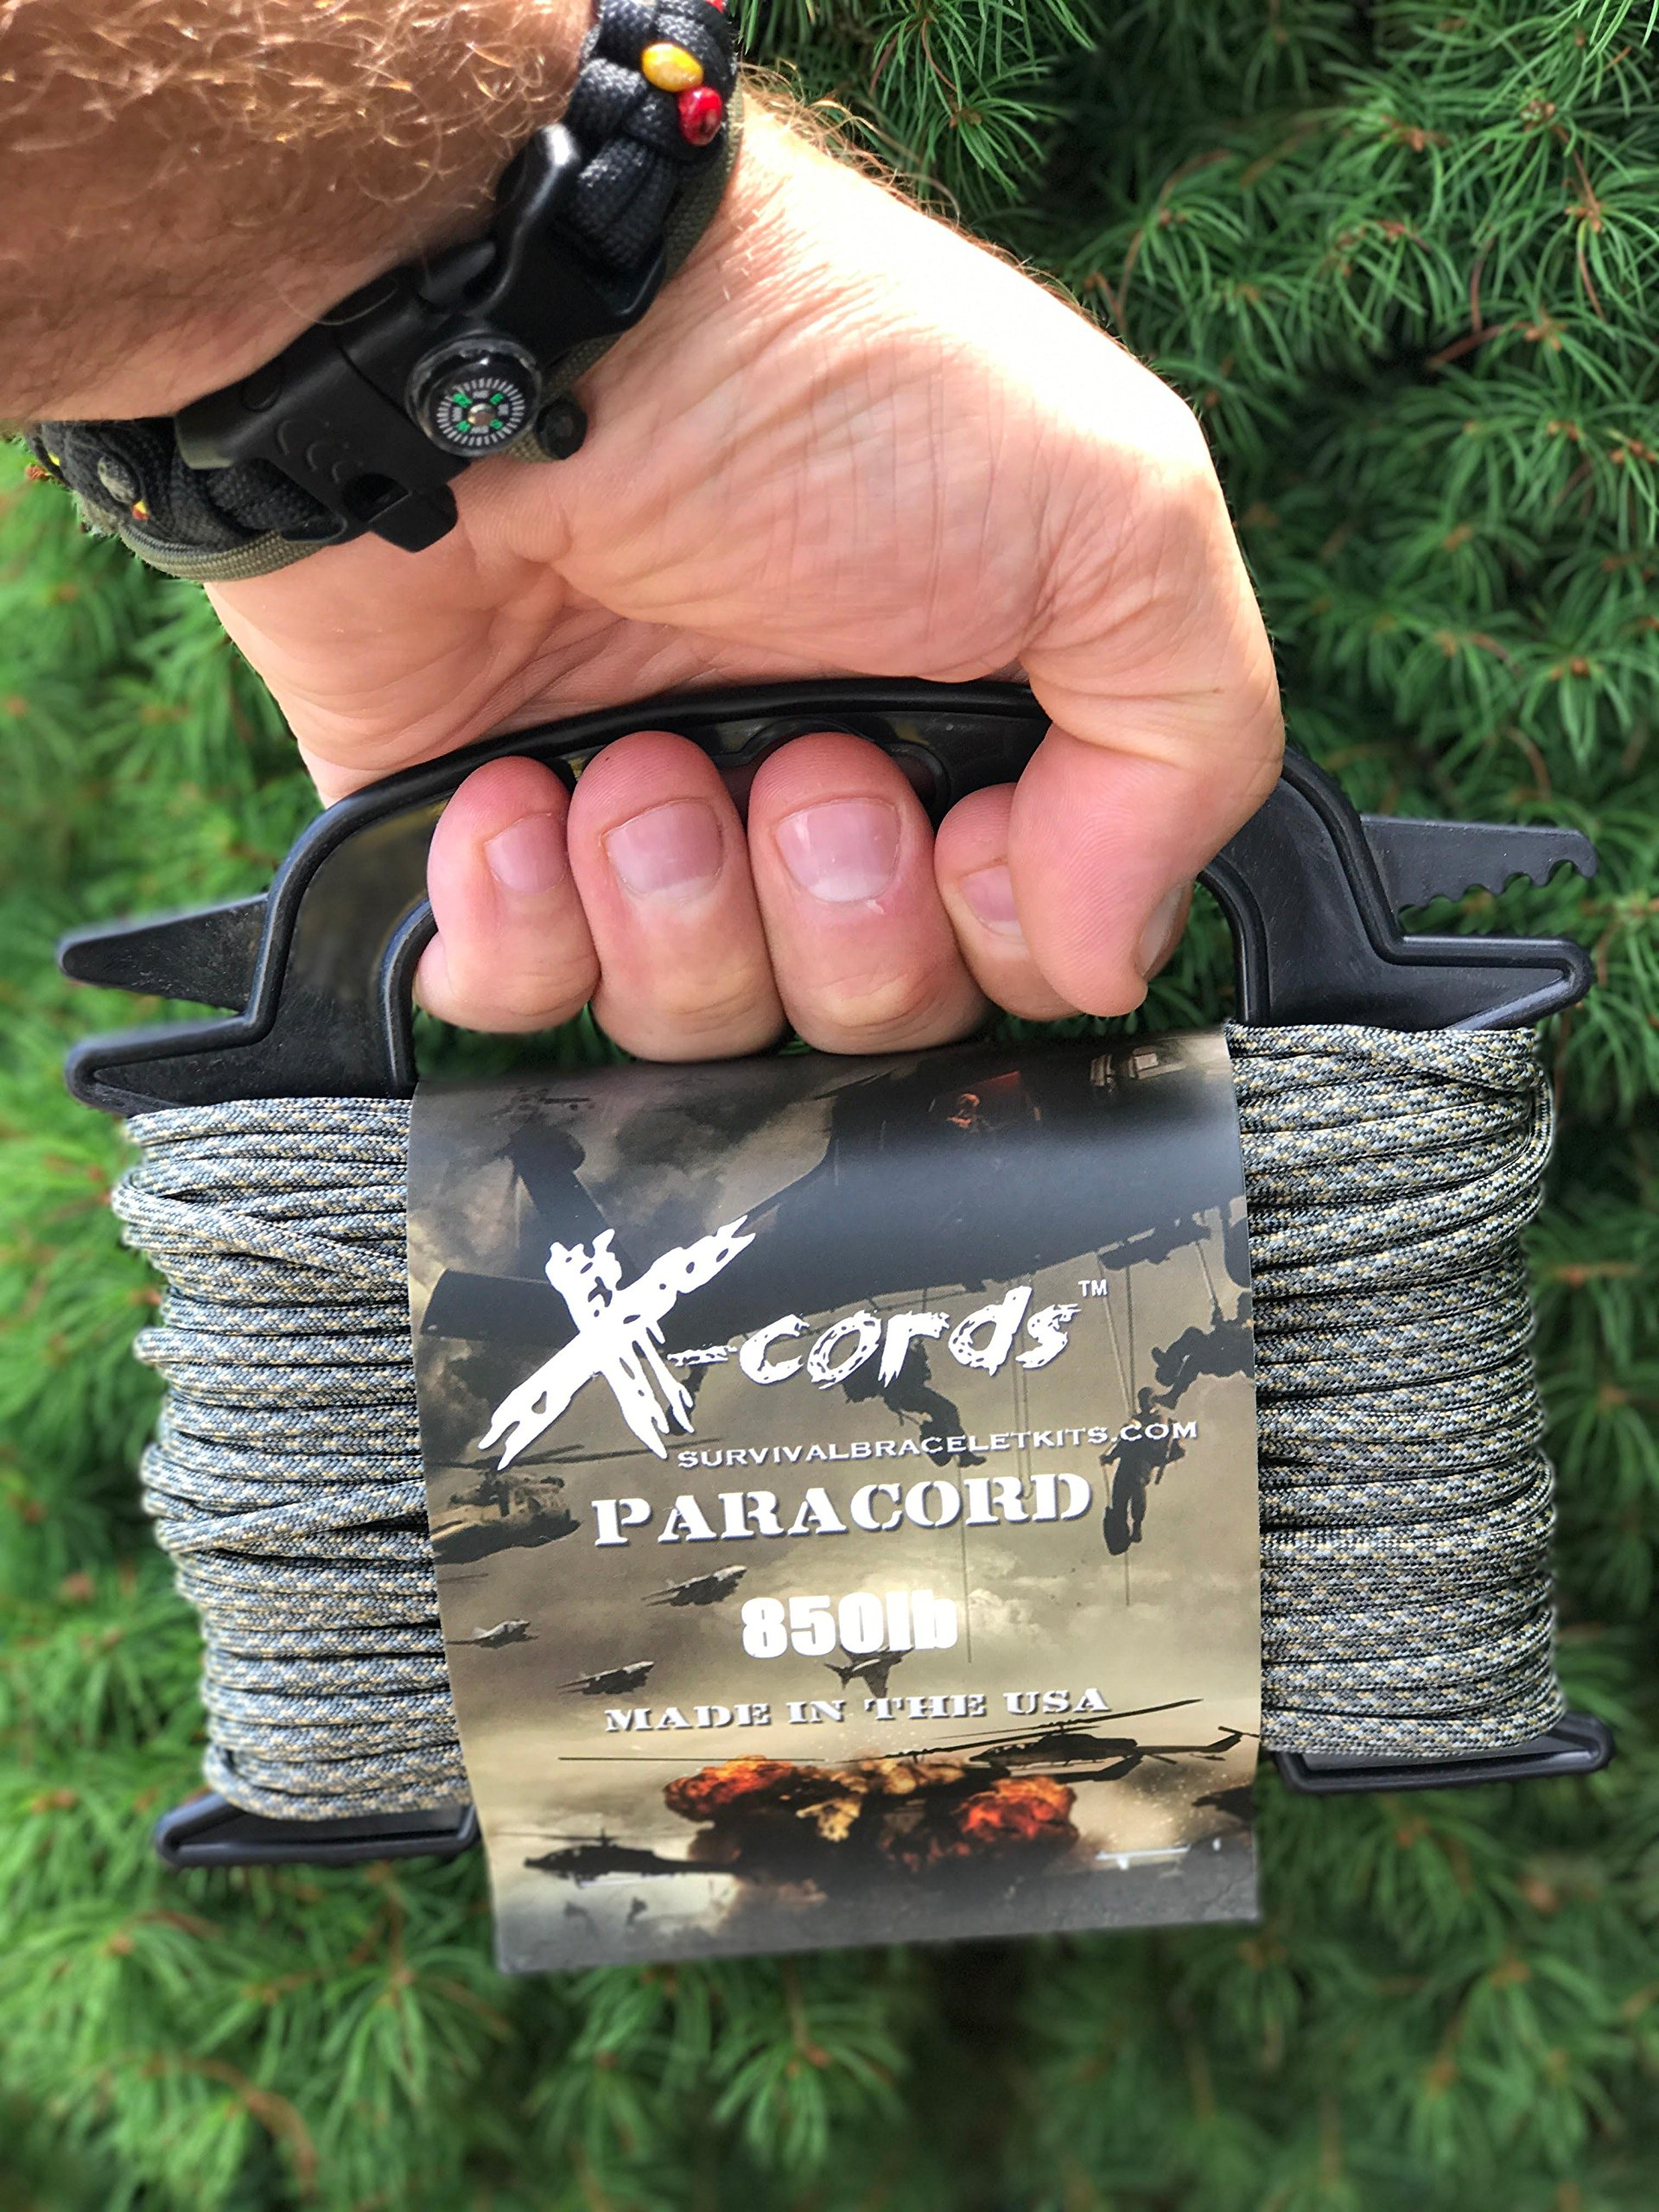 X-CORDS Paracord 850 Lb Stronger Than 550 and 750 Made by Us Government Certified Contractor (100' ACU CAMO ON Spool 850LB) by X-CORDS (Image #2)